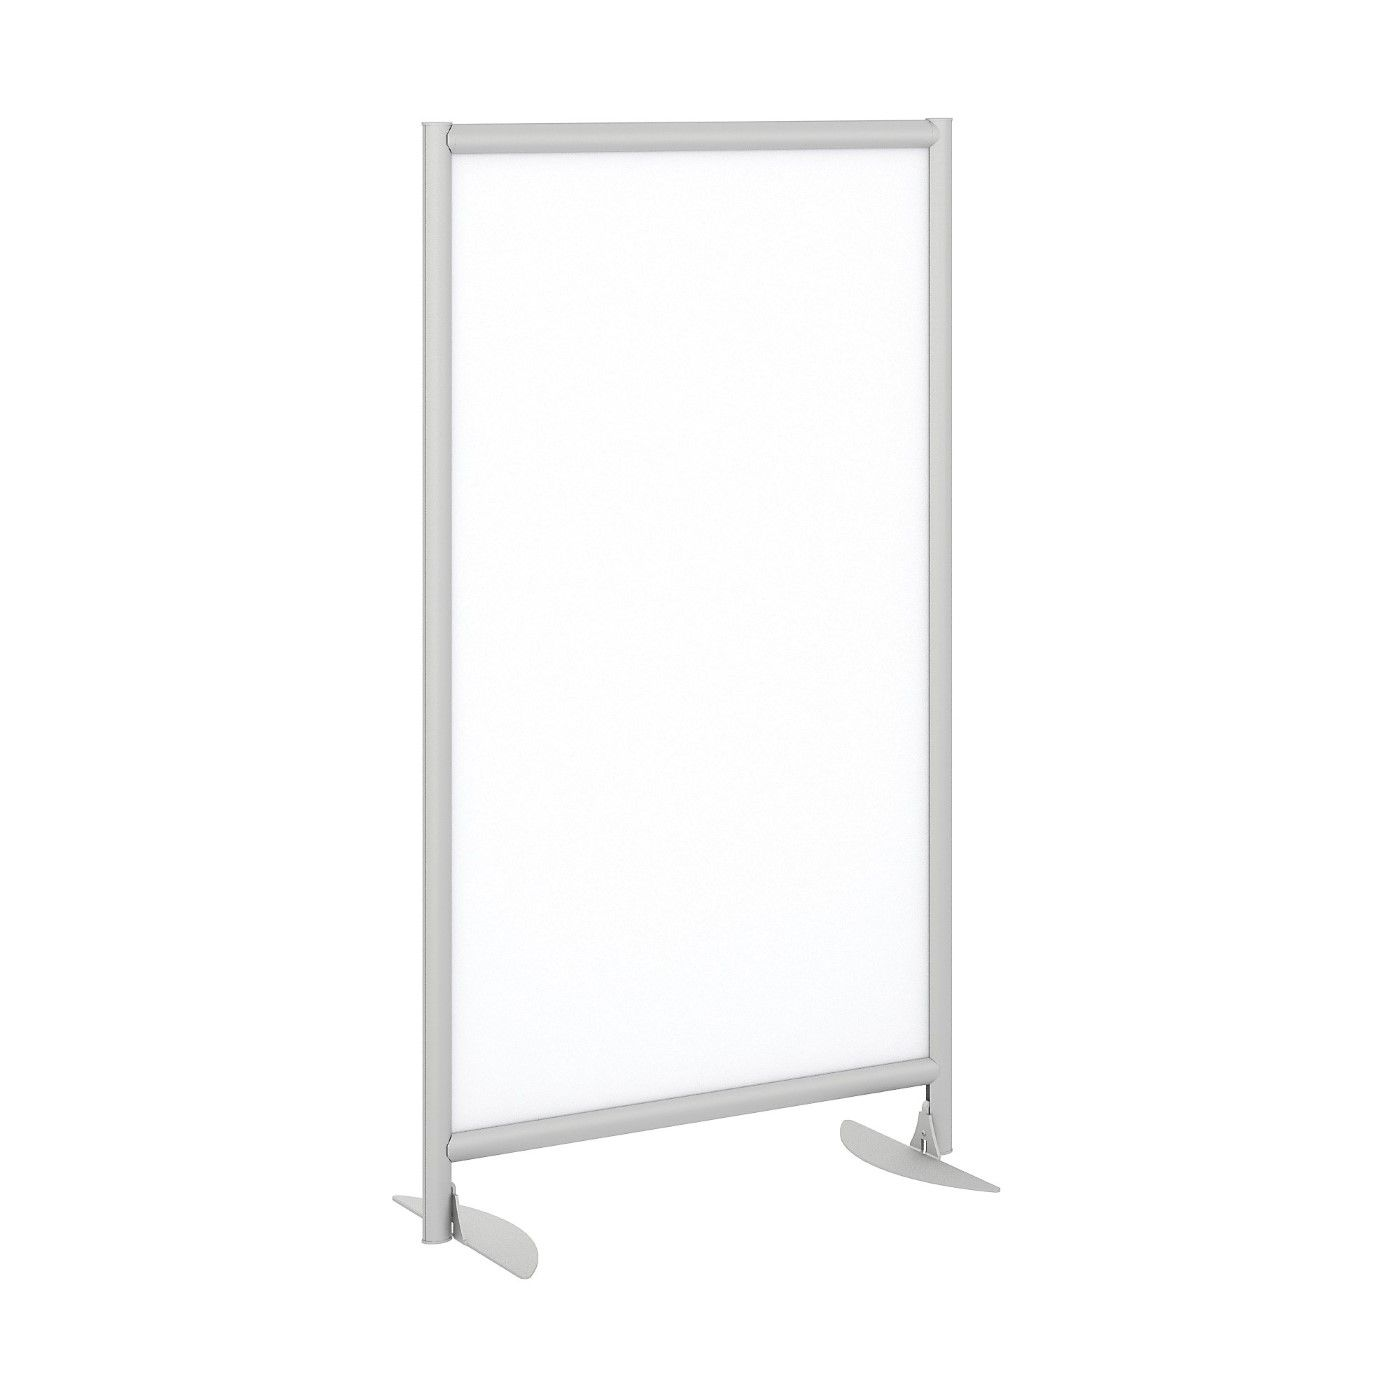 BUSH BUSINESS FURNITURE FREESTANDING WHITE BOARD PRIVACY PANEL WITH STATIONARY BASE. FREE SHIPPING